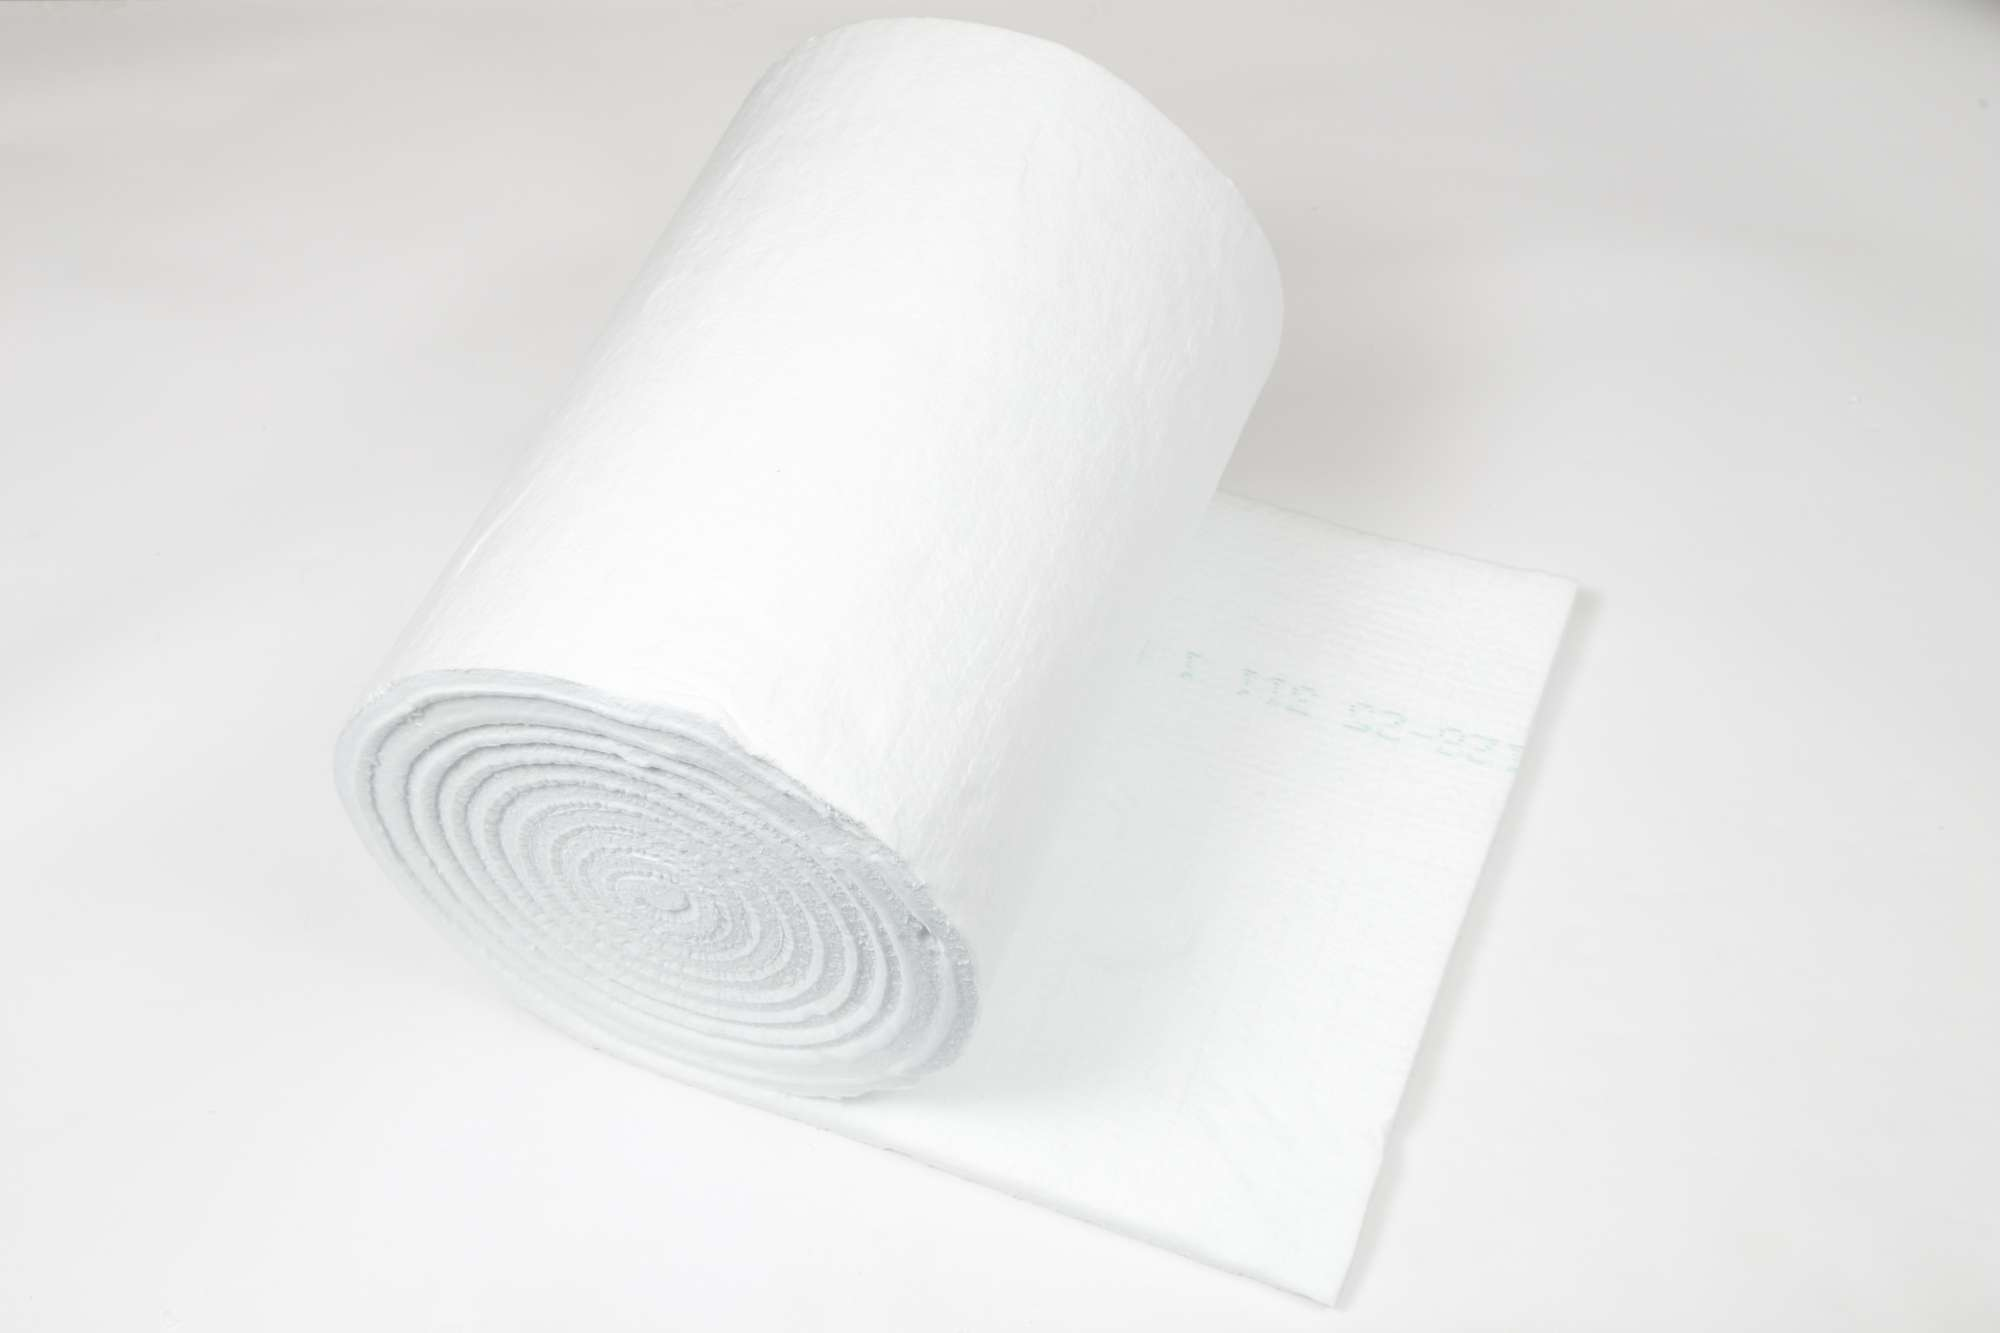 Image of 7.3m roll of 25mm thick, 600mm wide Superwool fibre blanket, 96kg/m³